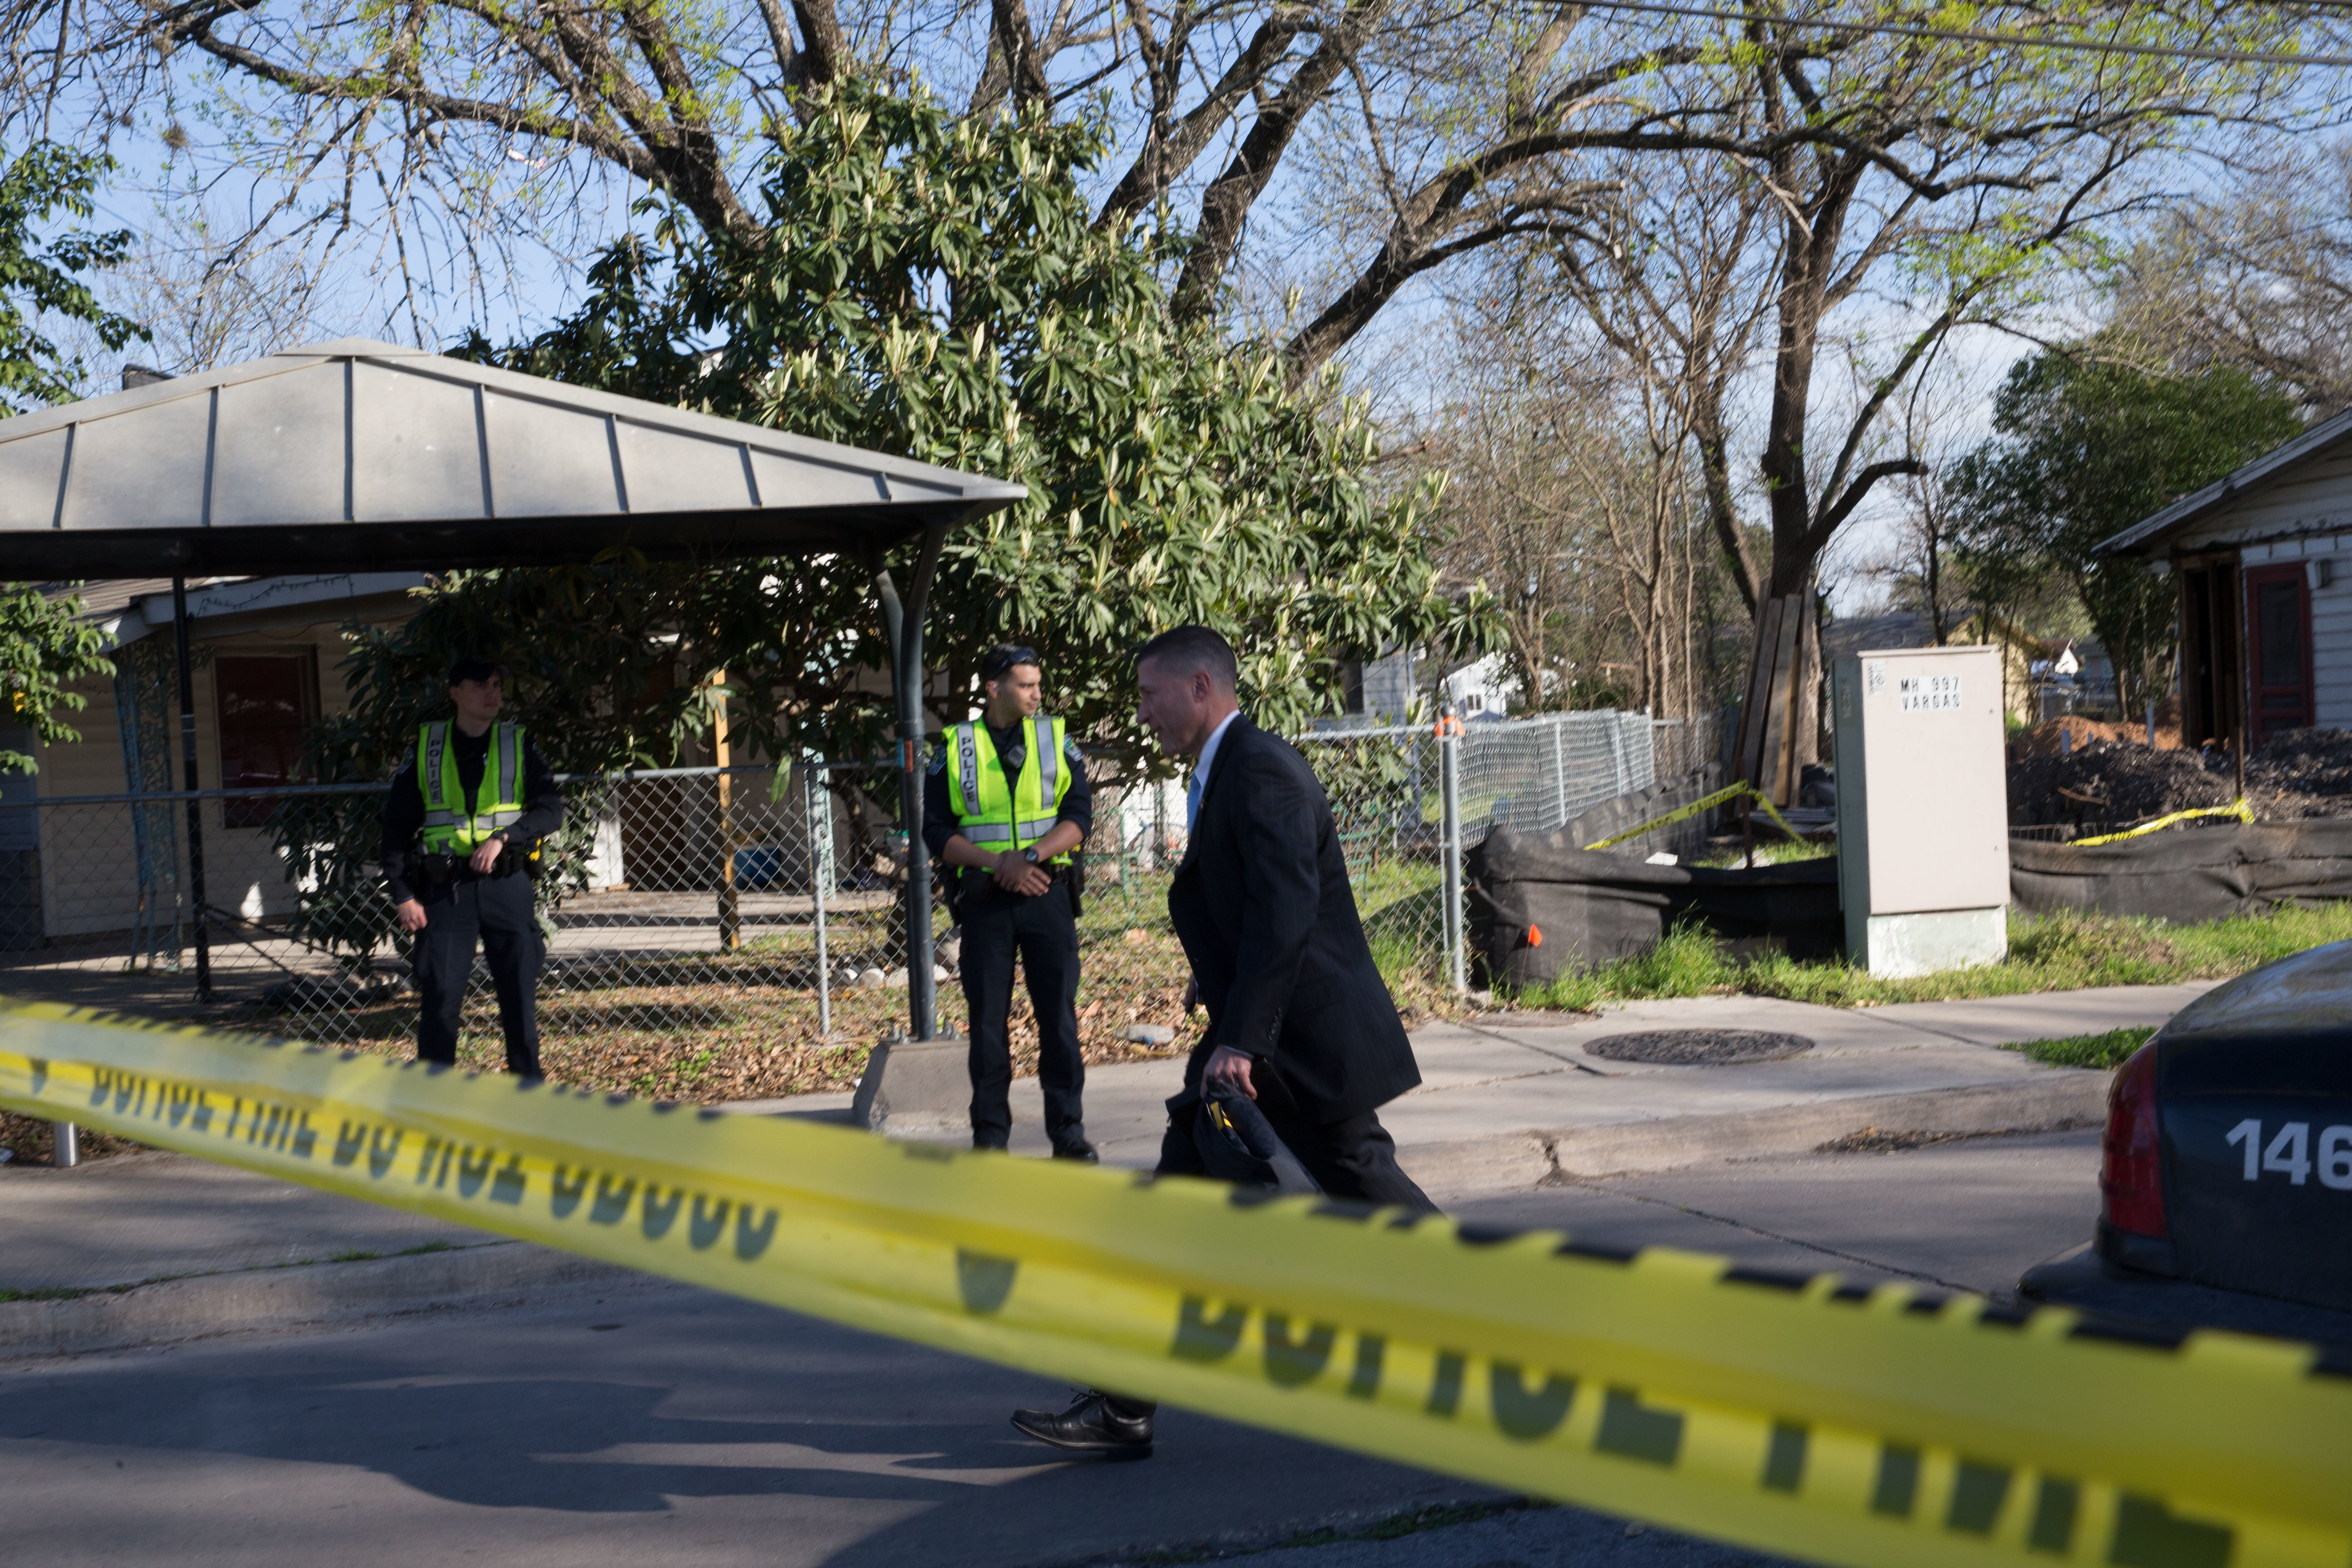 Authorities examine the scene of a bombing in Austin, Texas, on March 12. A woman in her 70s was injured in the explosion. Officials have said there is a serial bomber attacking the Austin area.